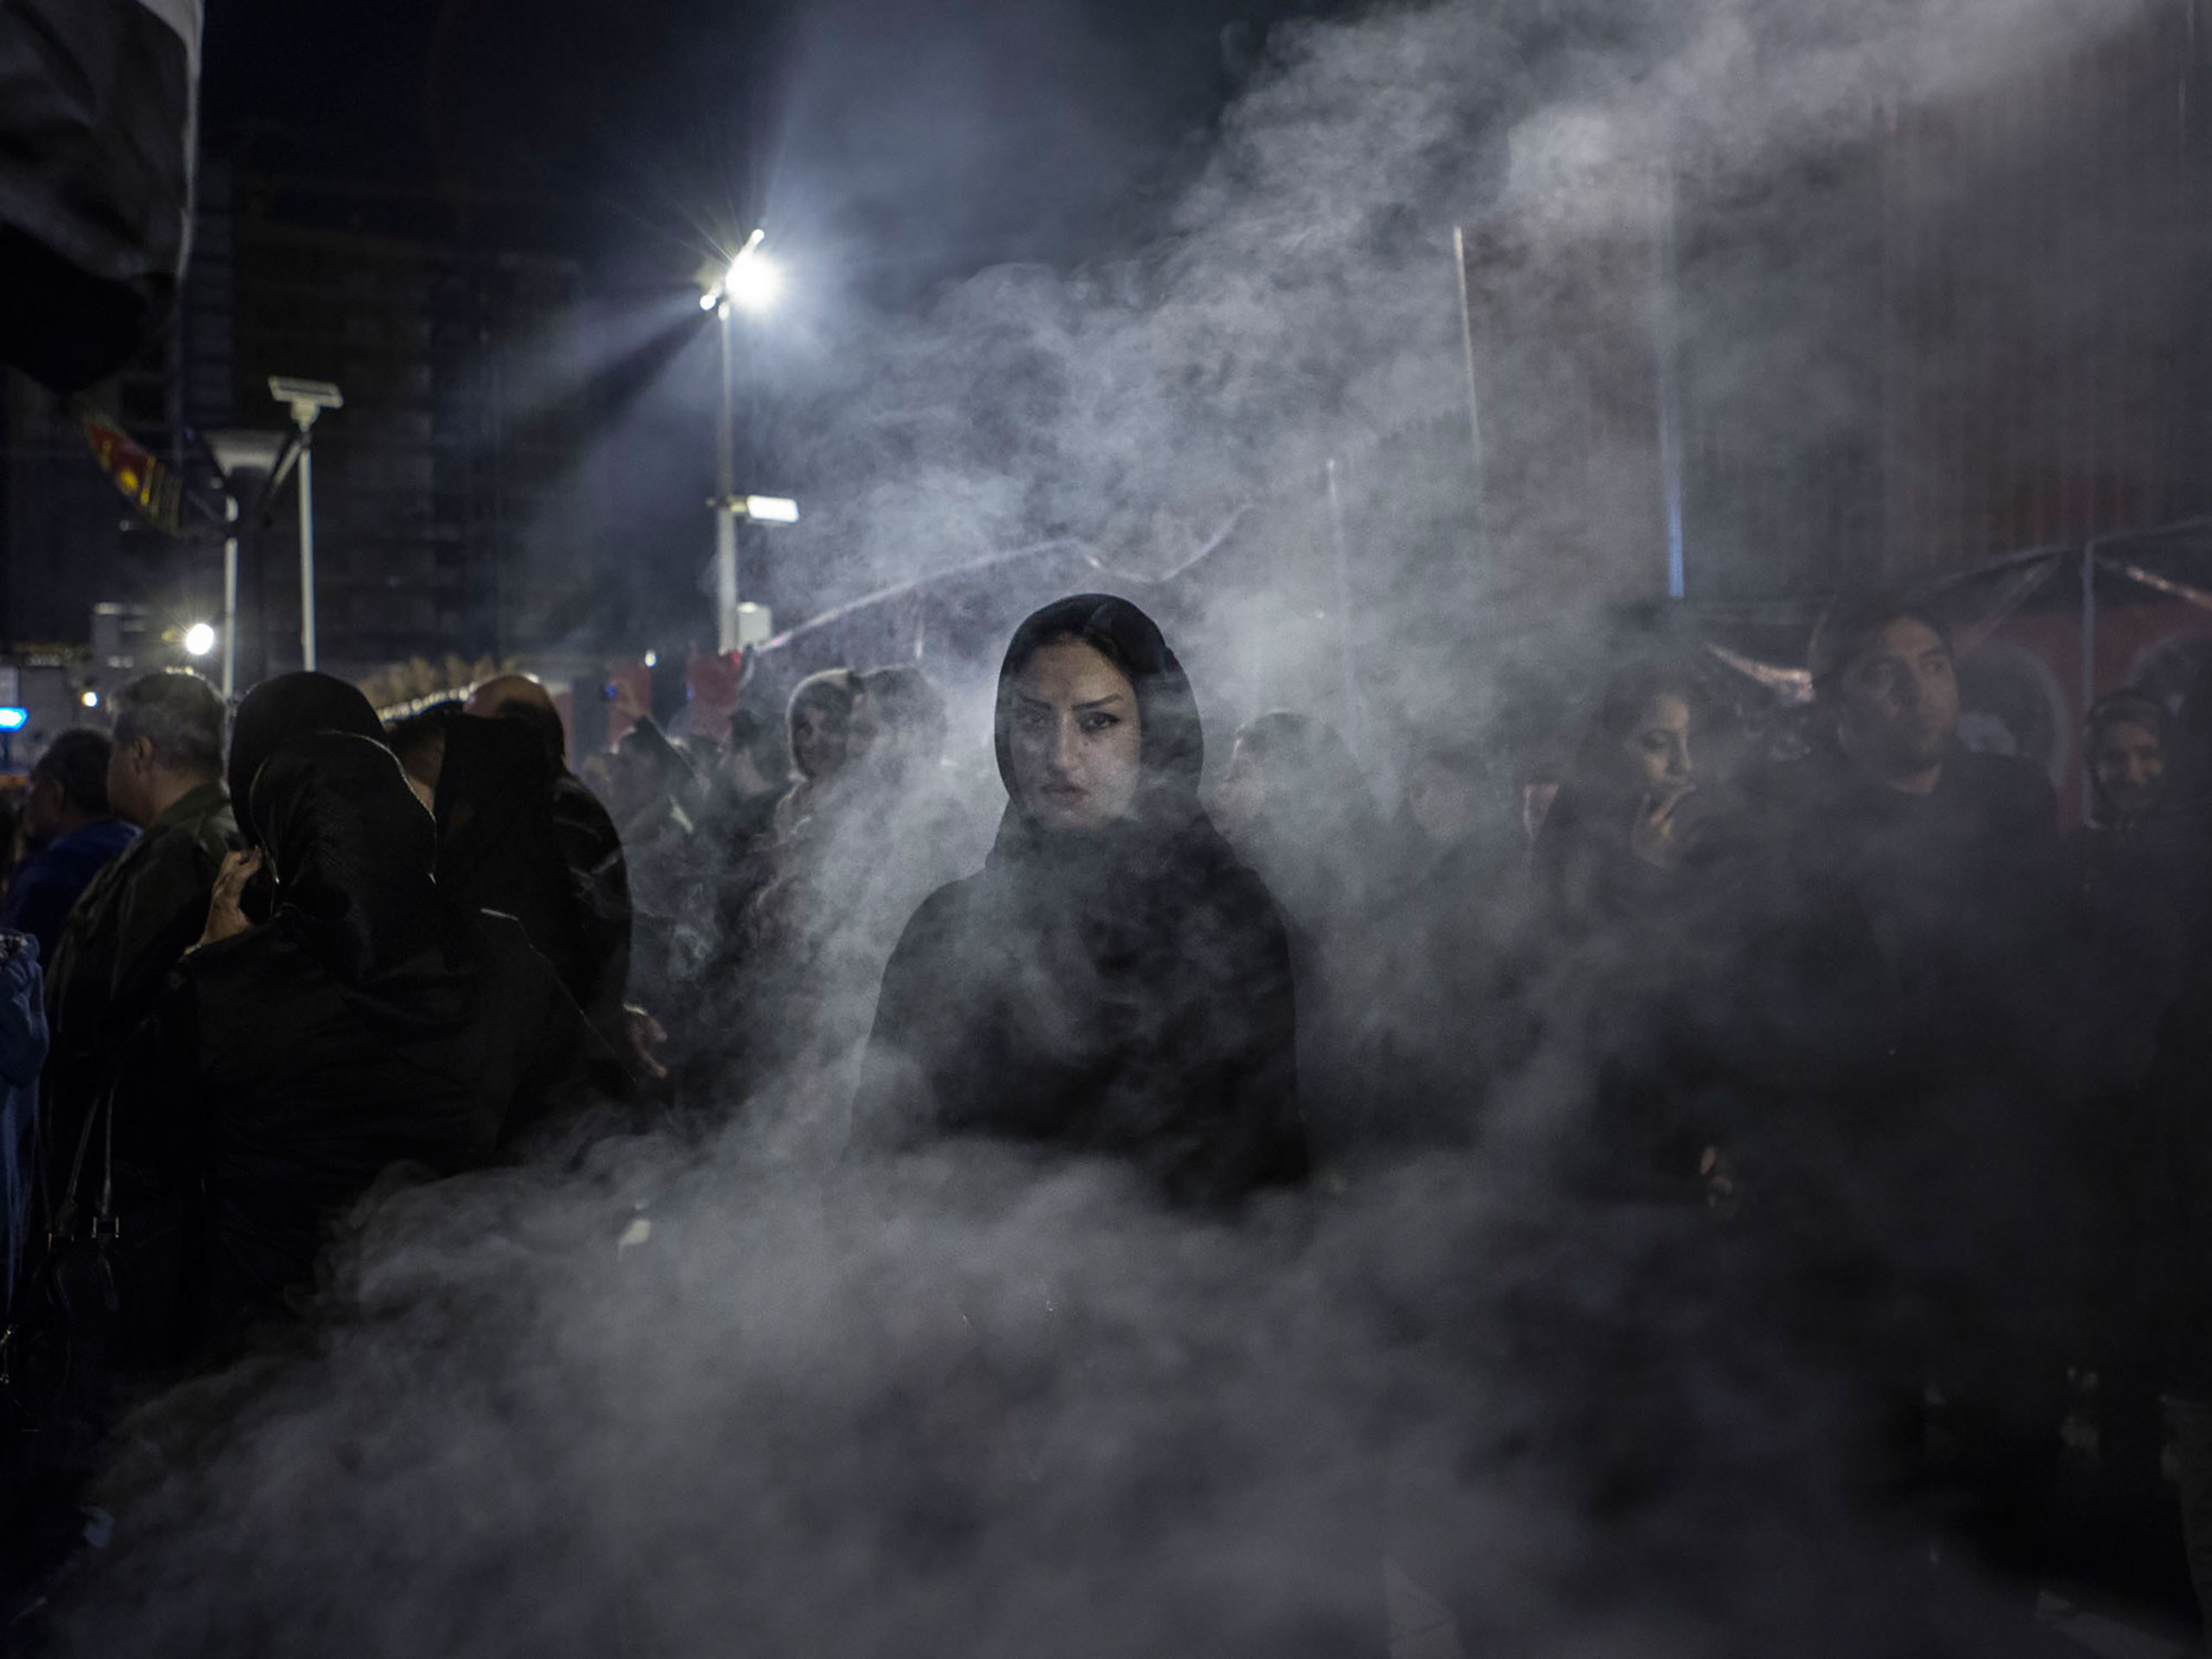 An Iranian woman walks through a haze of smoke caused by the burning of the herb esfand. According to popular belief, this ritual drives away the evil eye.From  See Iran Coming Out of the Shadows